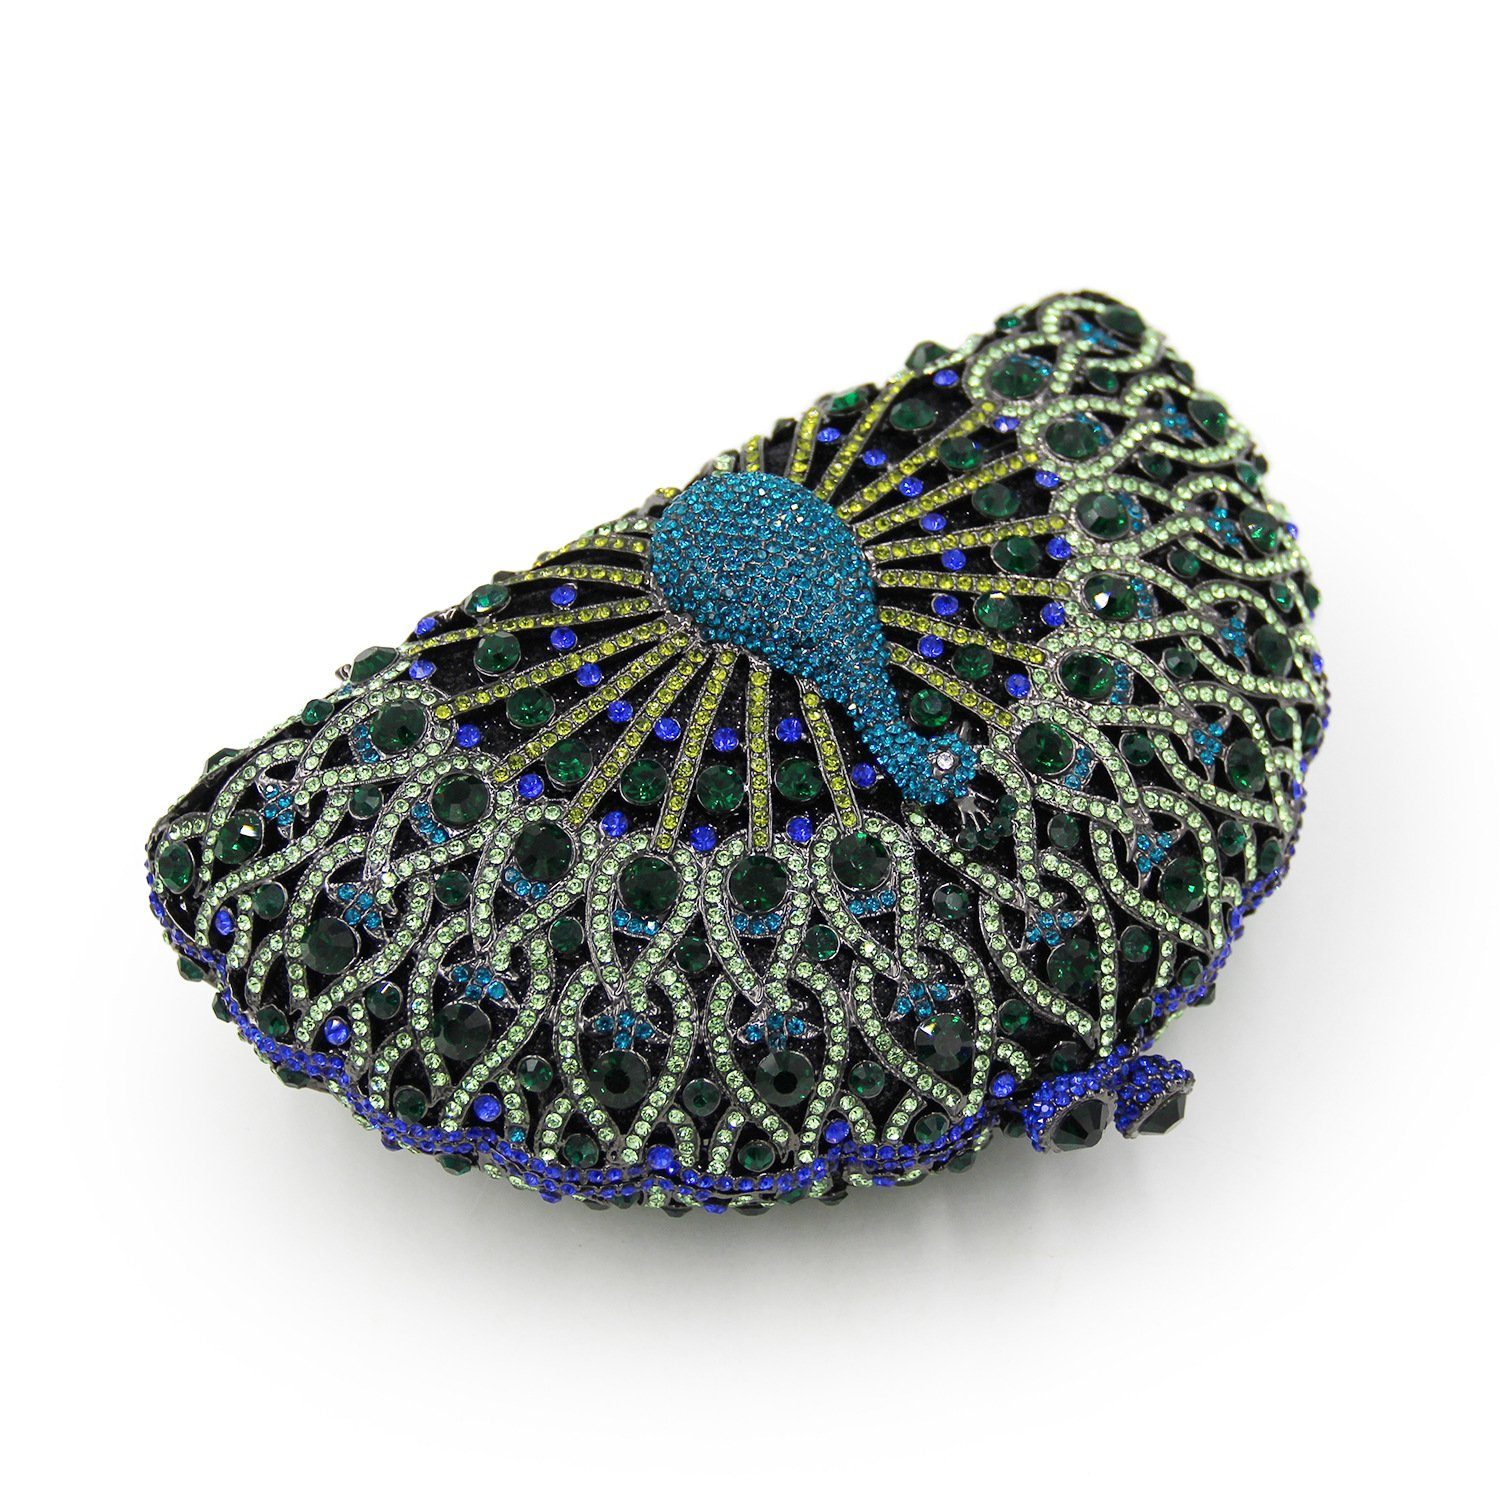 Amazon.com: BeautyWJY Luxury Crystal Clutches For Women Peacock Clutch Evening Bag Blue: Clothing